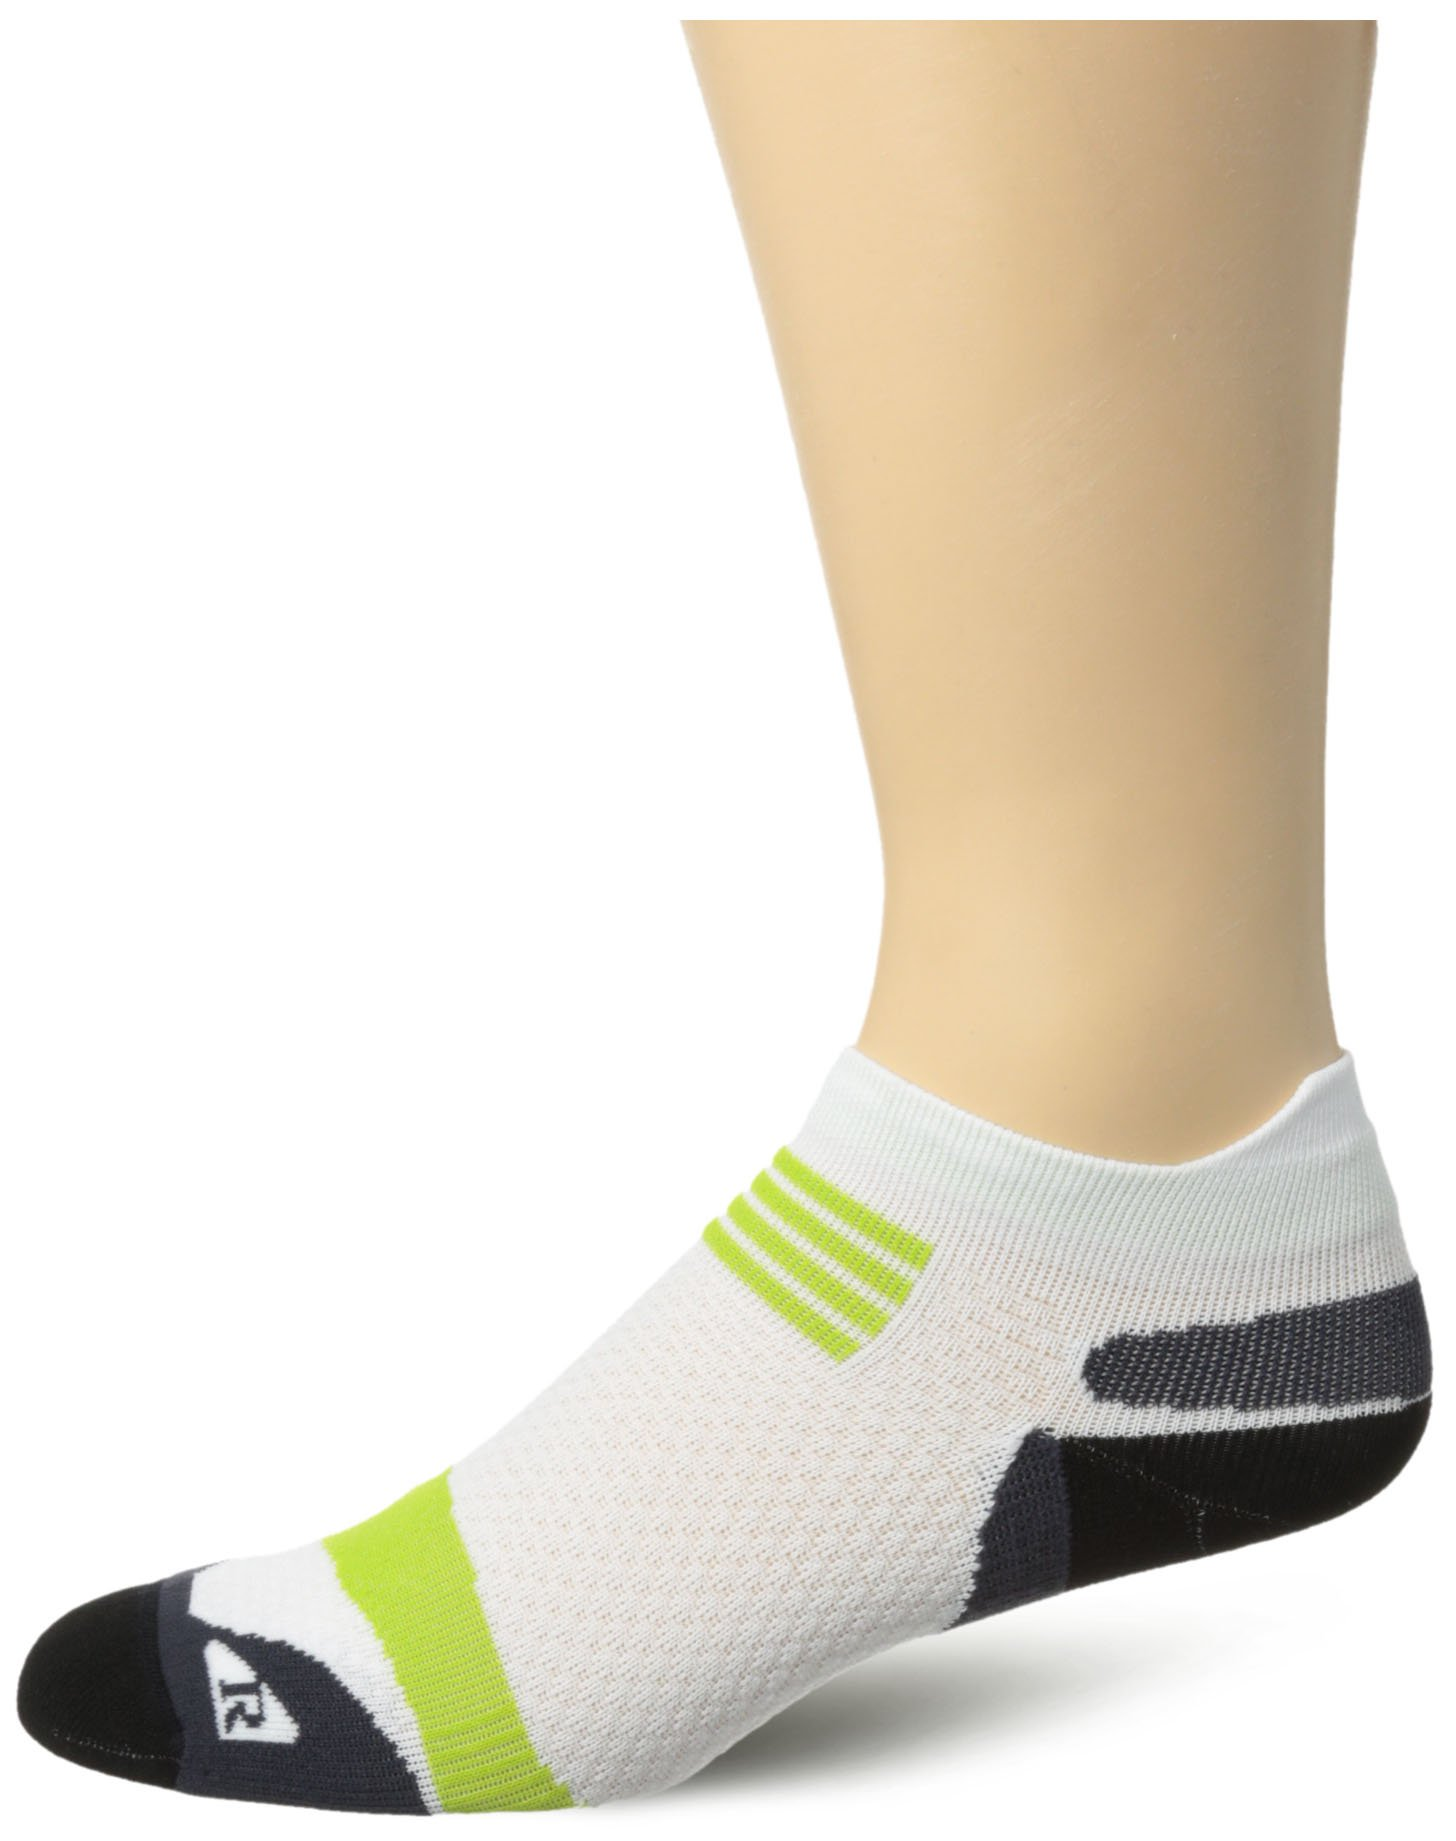 ASICS Kayano Single Tab Sock, White, X-Small by ASICS